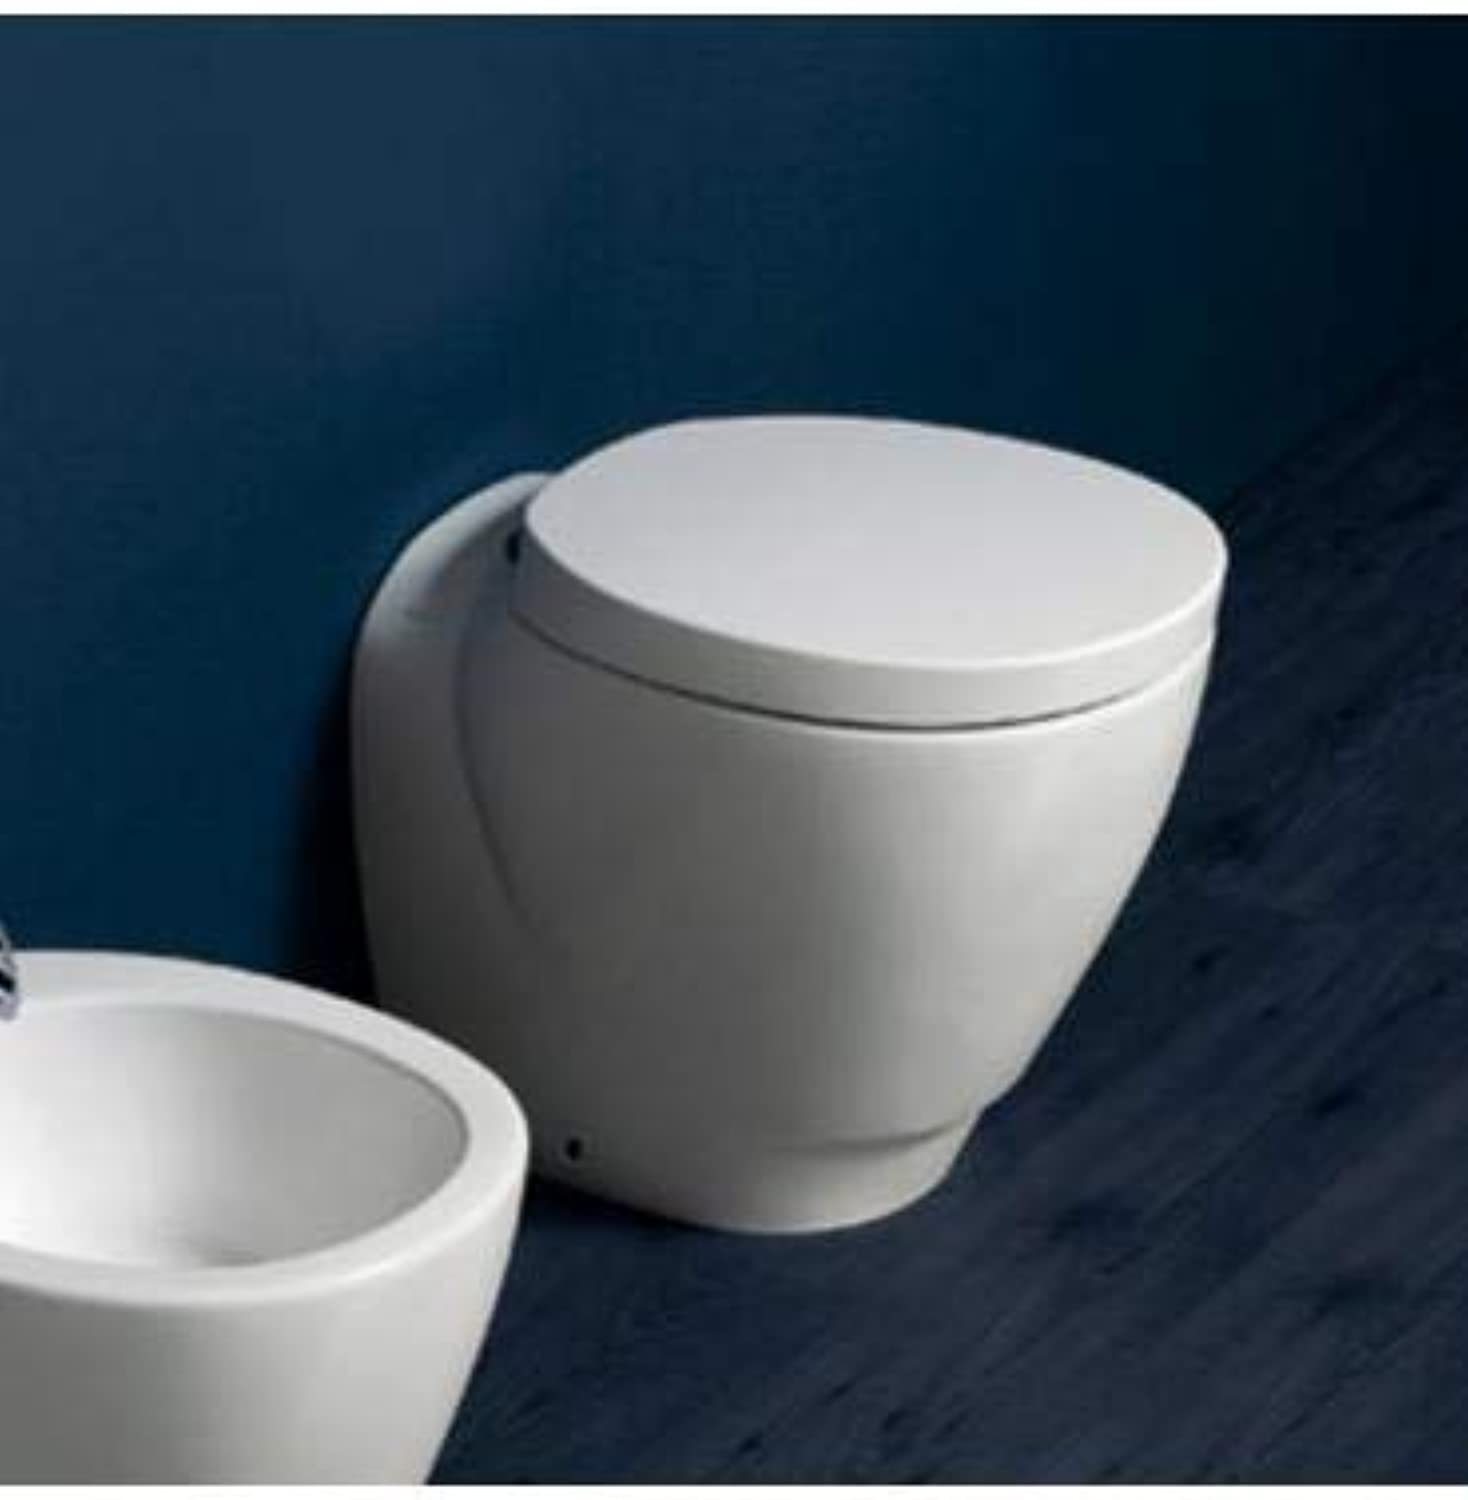 Simas - Floor Standing Toilet Back to Wall Floor Standing, Simas Bohemien - White, Without Toilet seat, in Stock